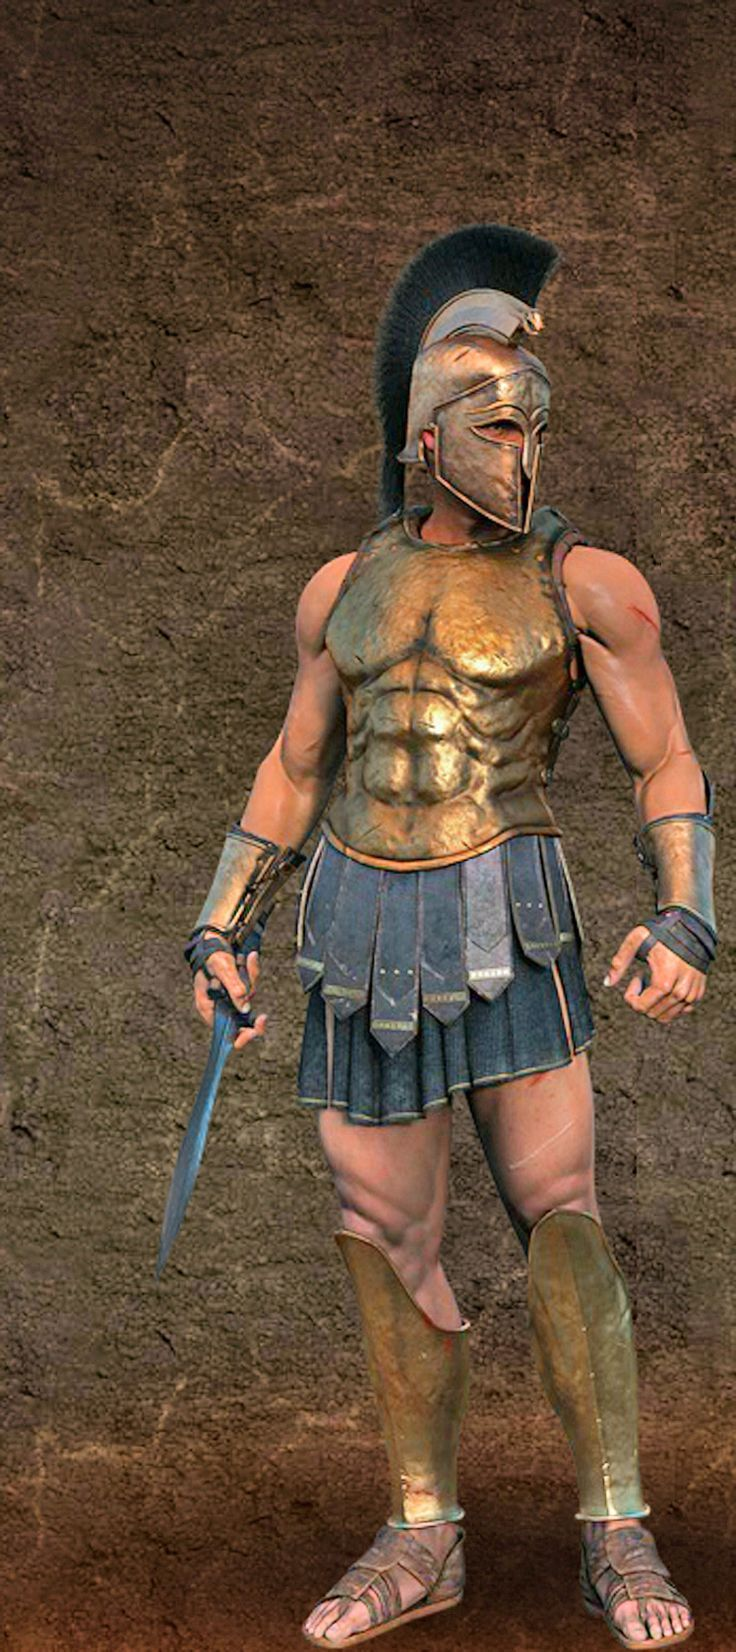 armor of ancient rome essay During the middle ages, leather armor, particularly in the early middle ages,  ancient egypt ancient rome ancient greece american history asian middle ages.